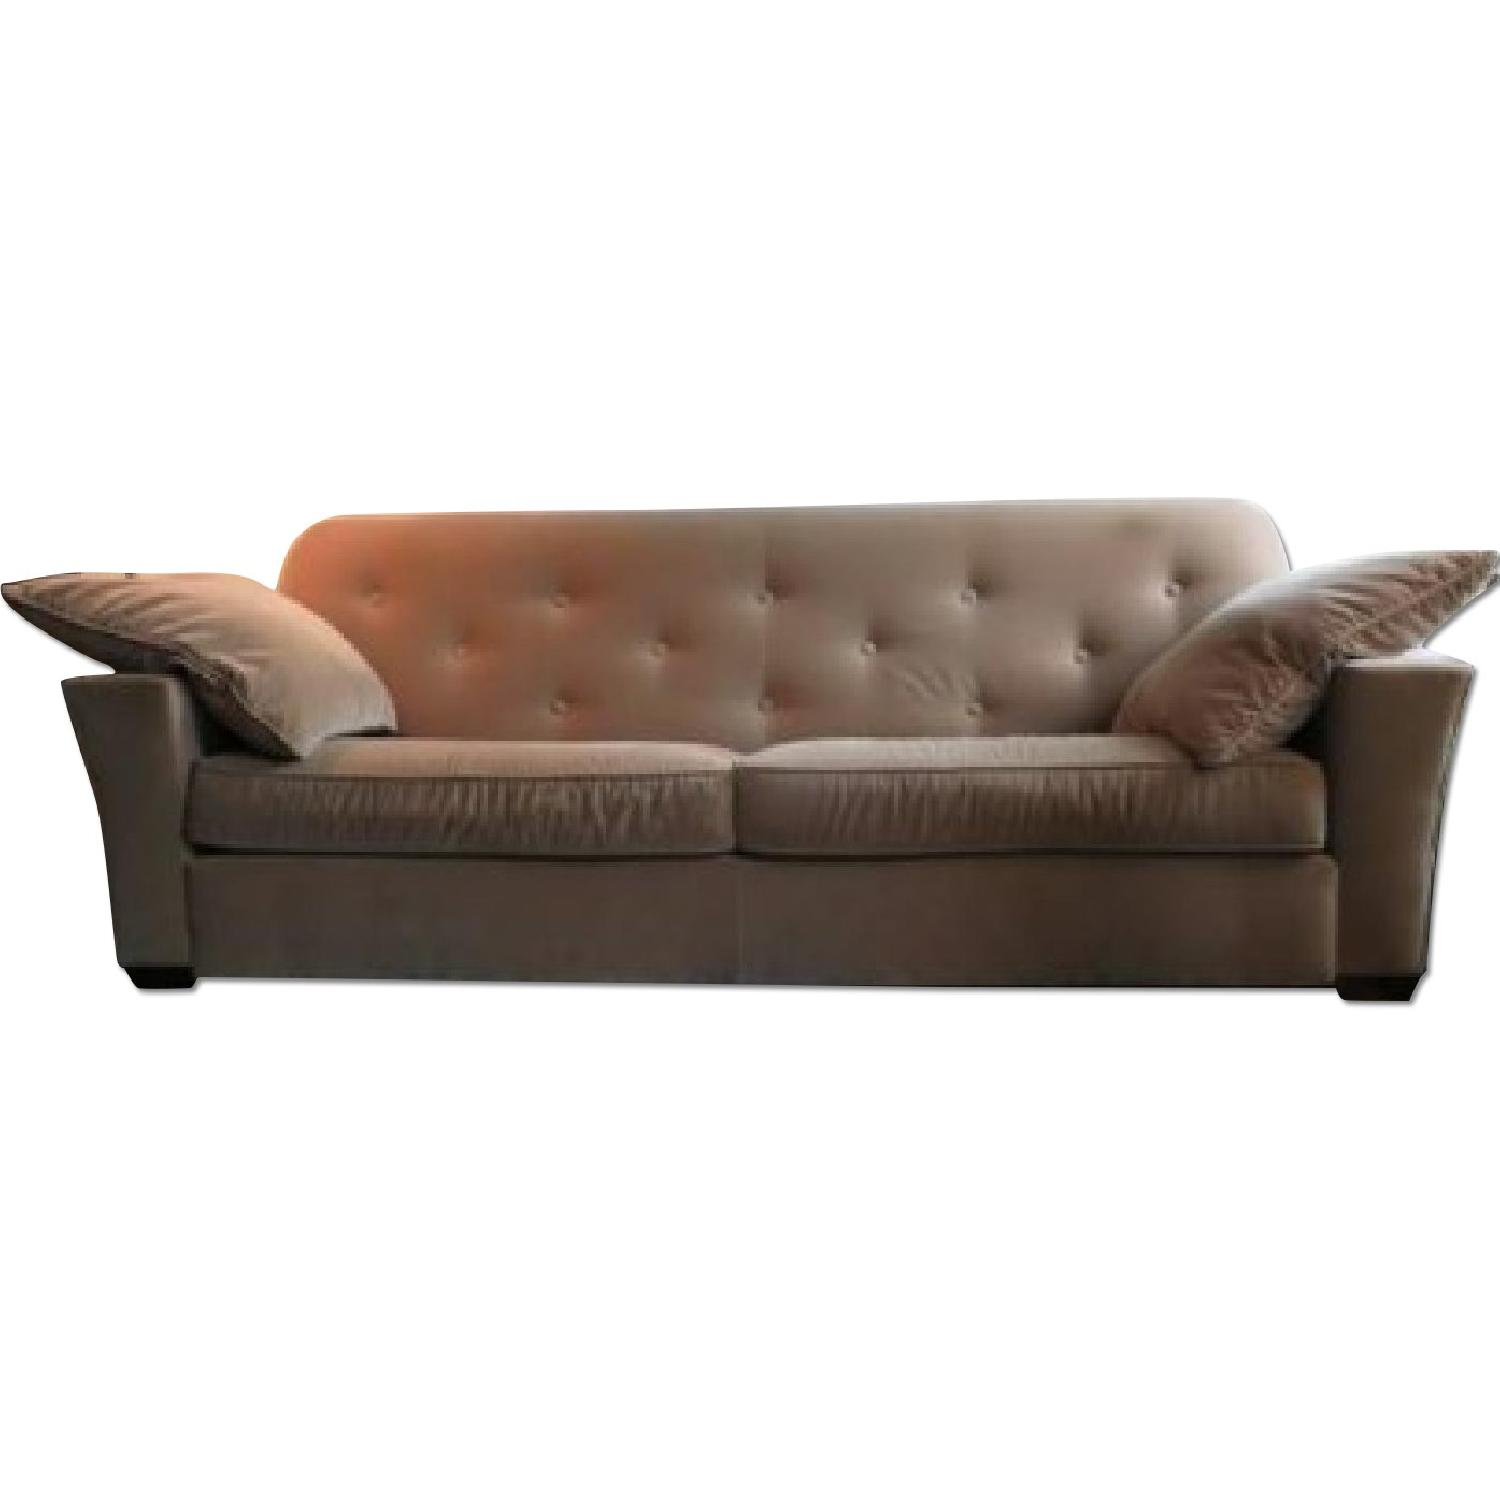 ABC Carpet & Home Cotton Velvet Sofa - image-0